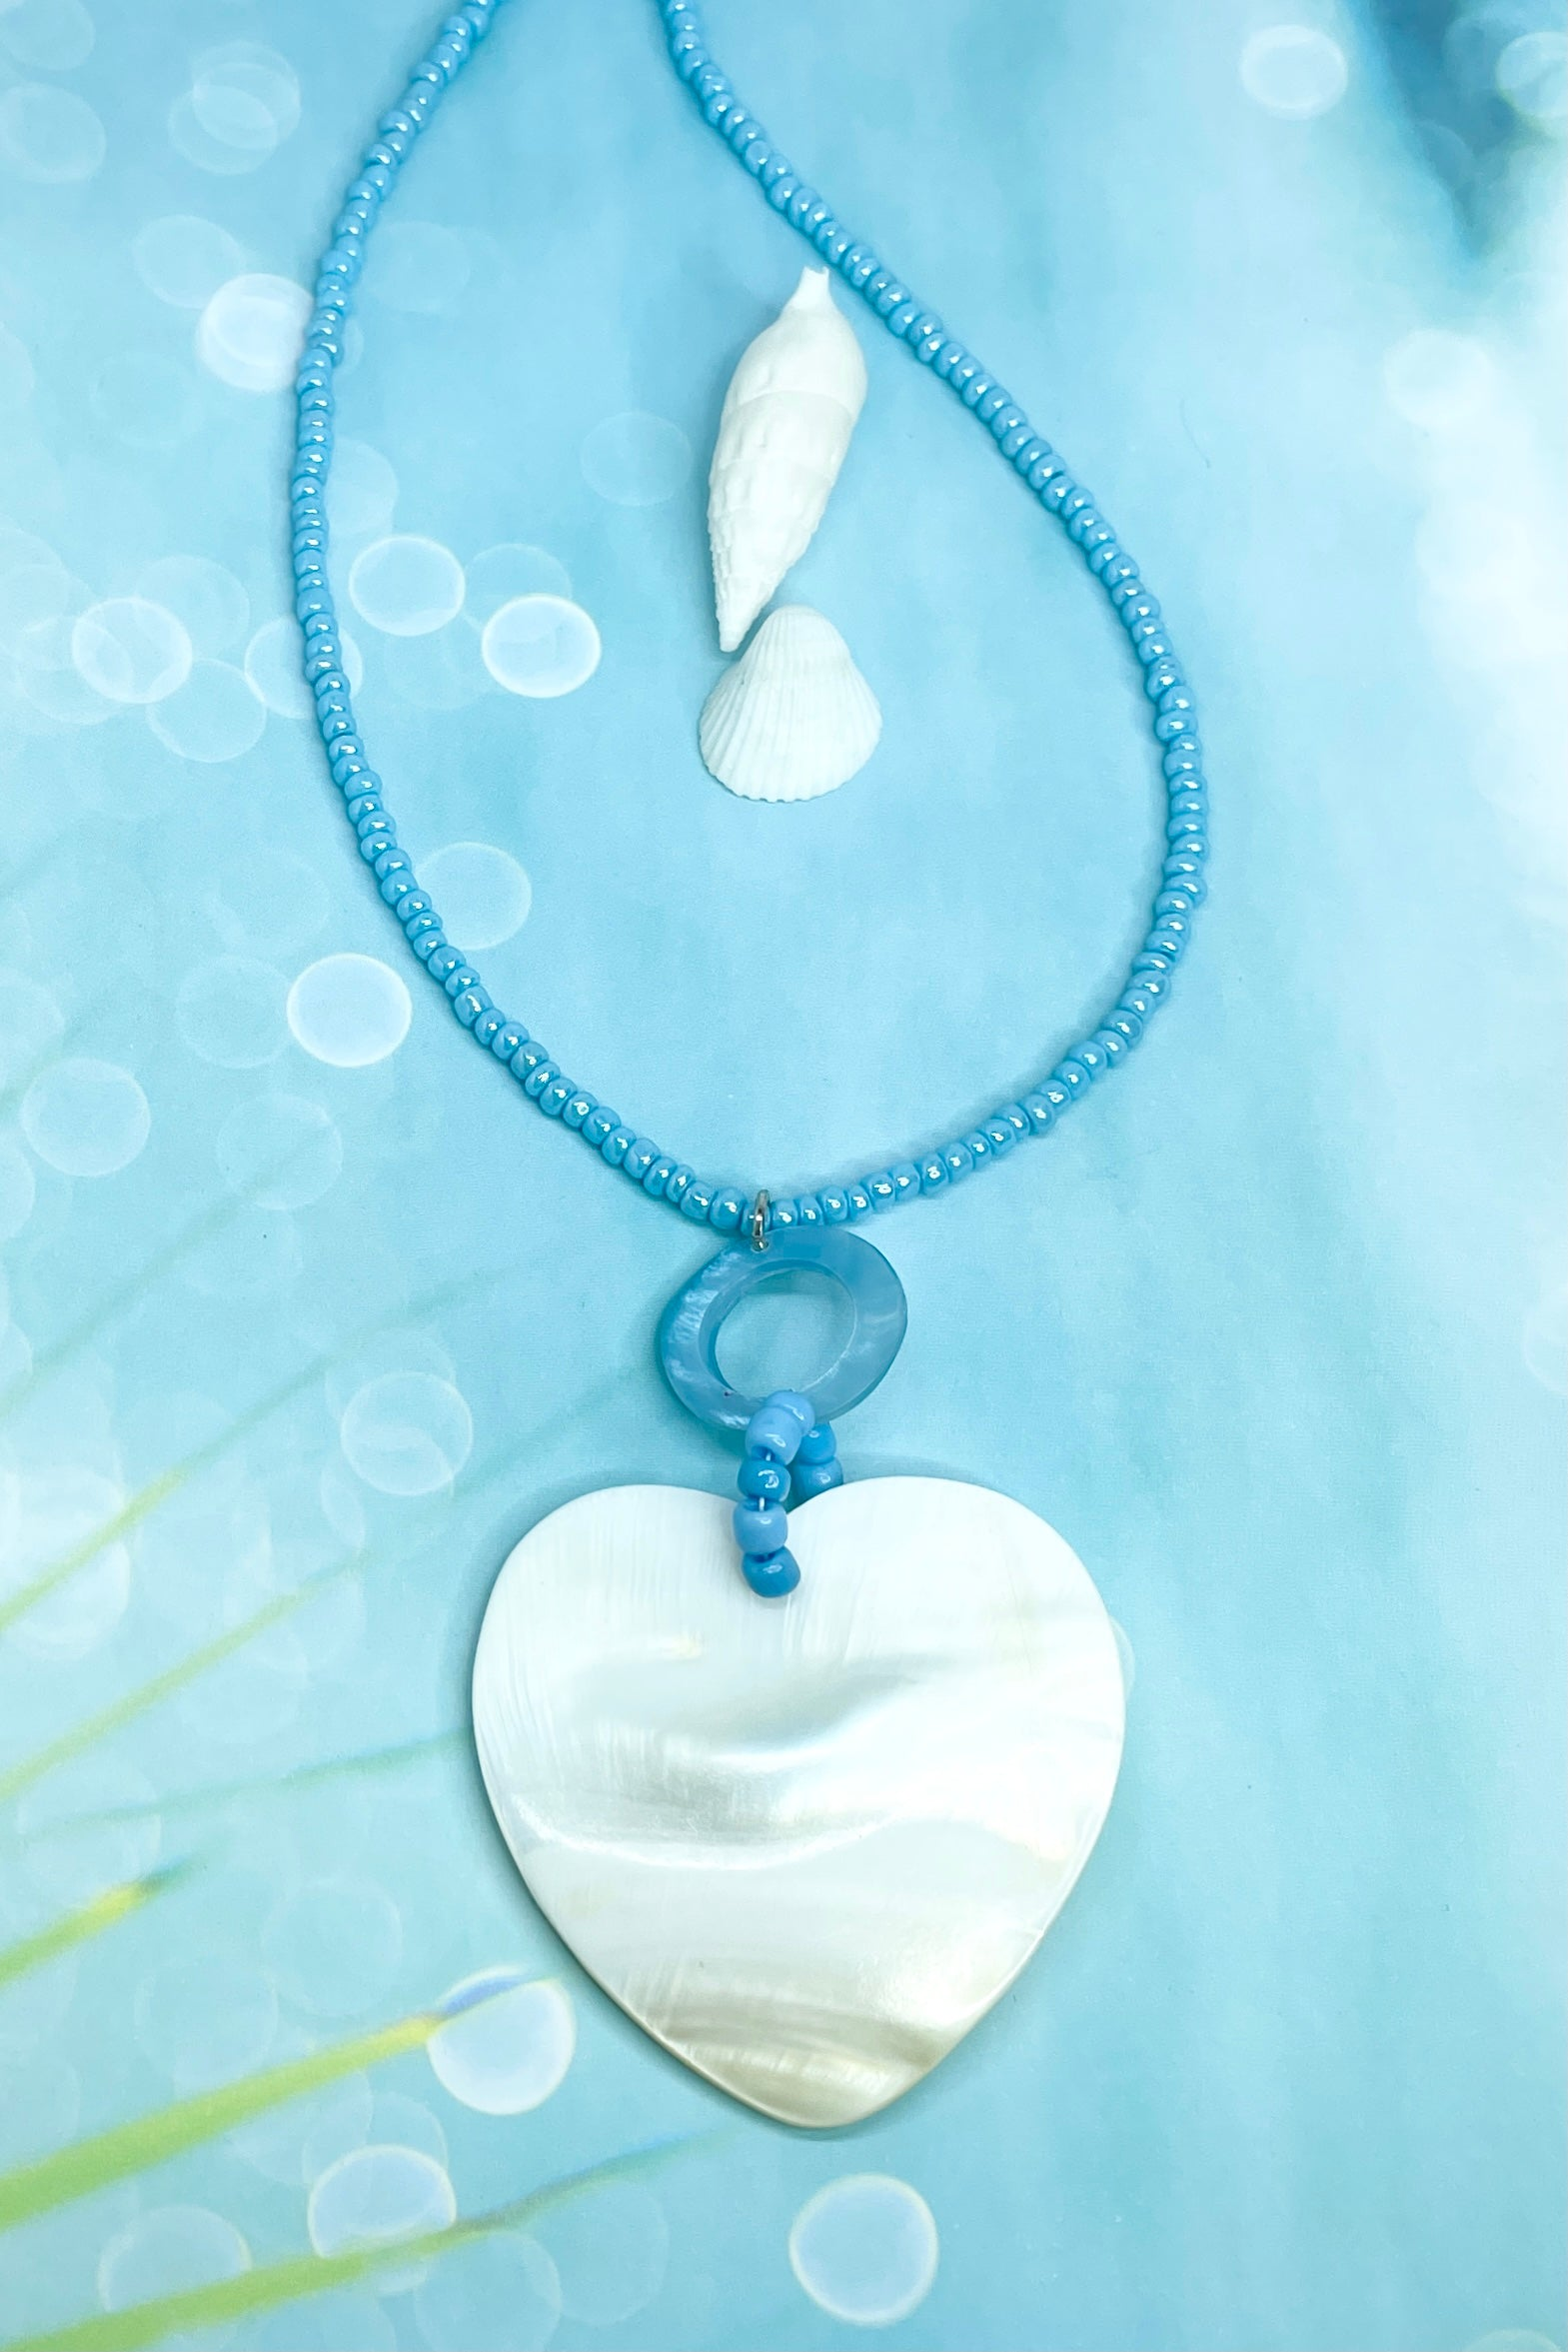 with a love heart hand carved from Mother of Pearl shell,